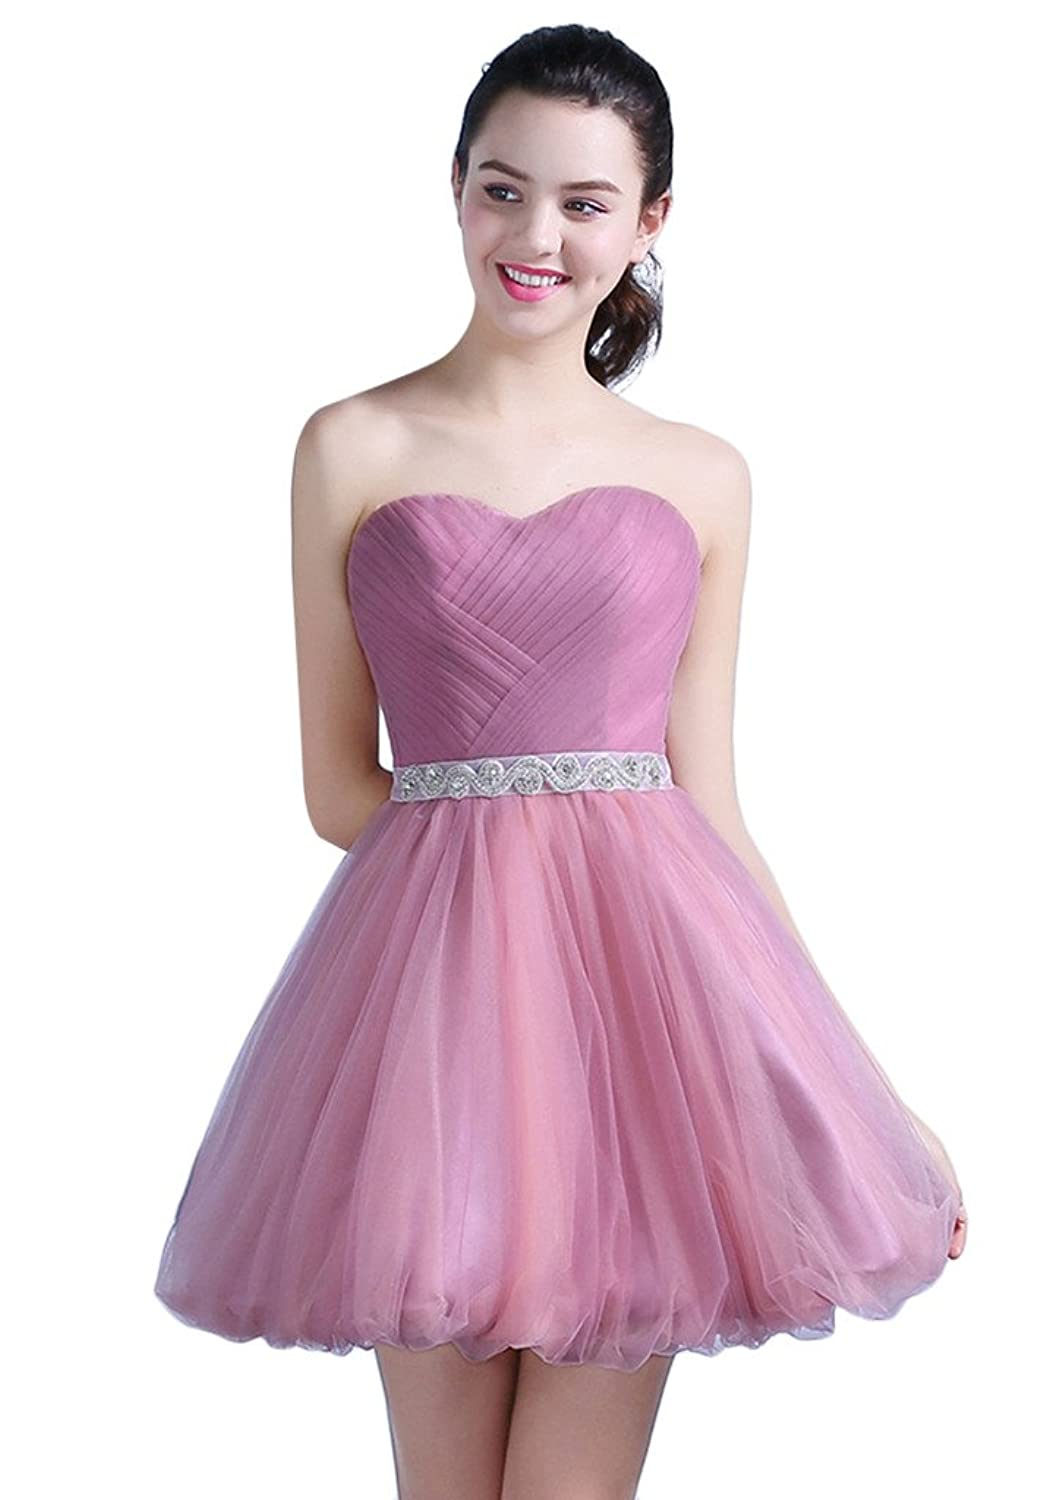 Vimans? Girl's Short Pink Pleated Sweetheart Gowns with Beads for Cocktail